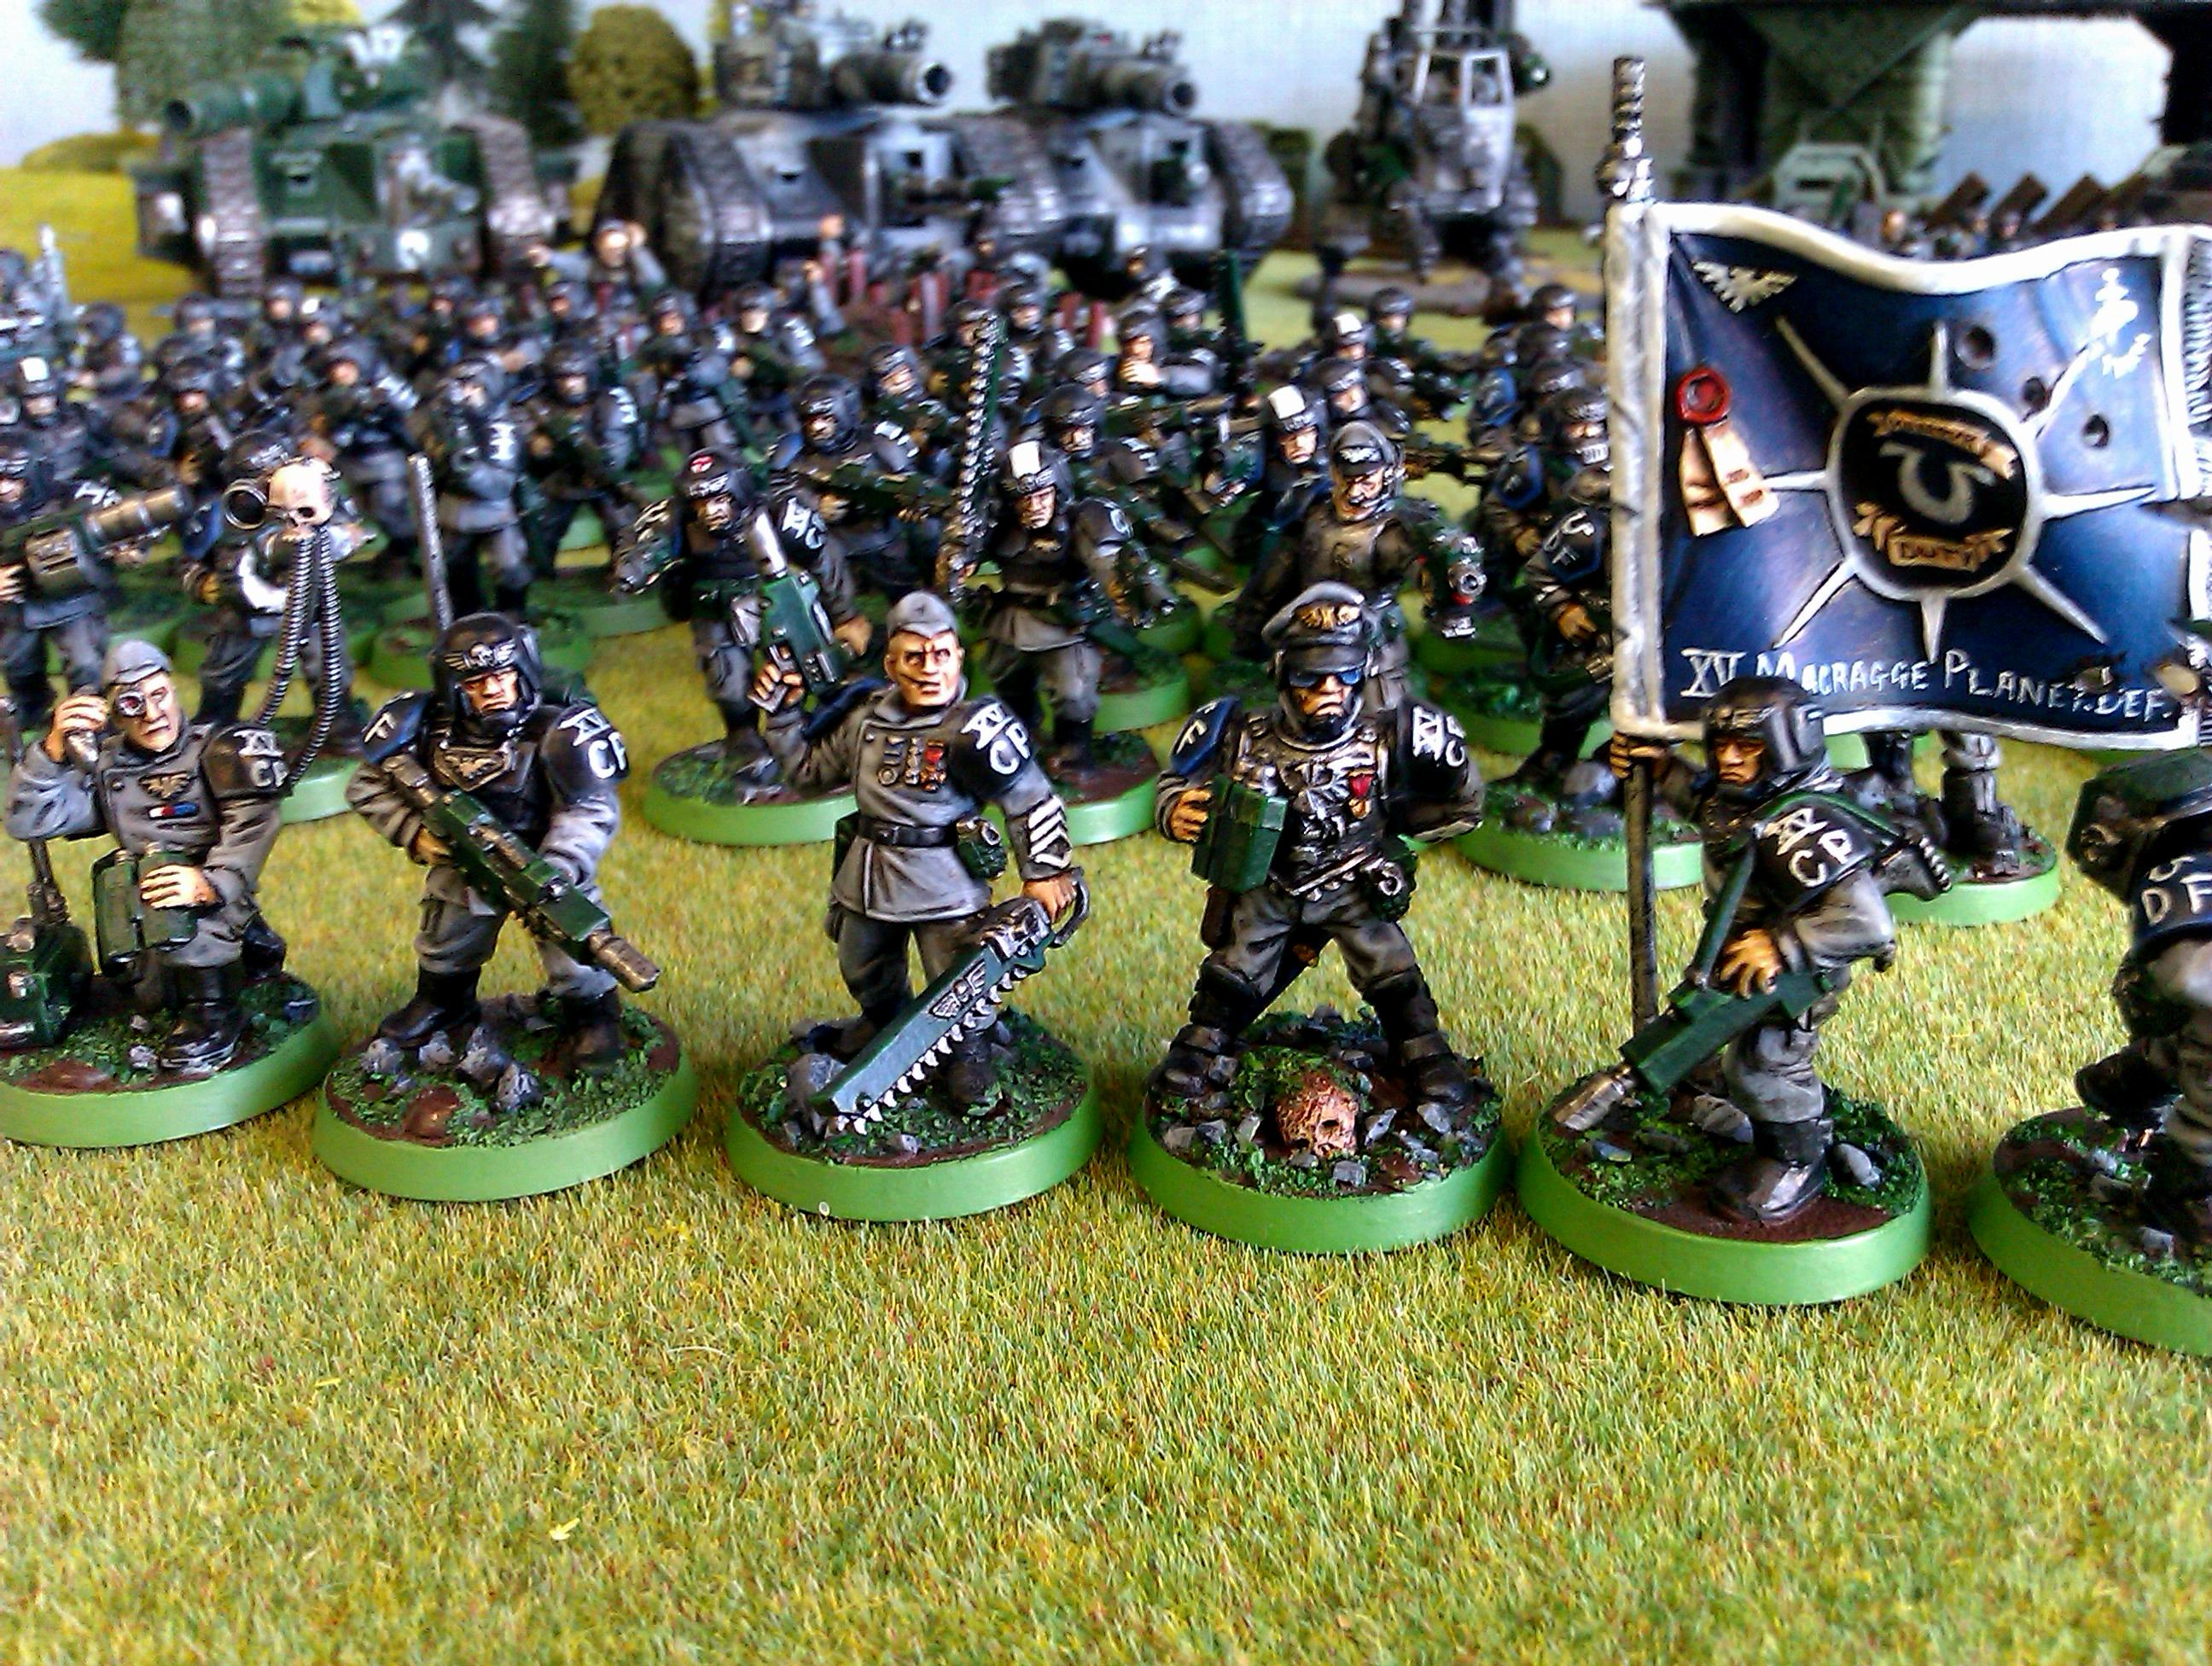 Army, Awesome, Battle Report, Imperial Guard, Nids, Pdf, Space Marines, Tyranids, Ultramarines, Warhammer 40,000